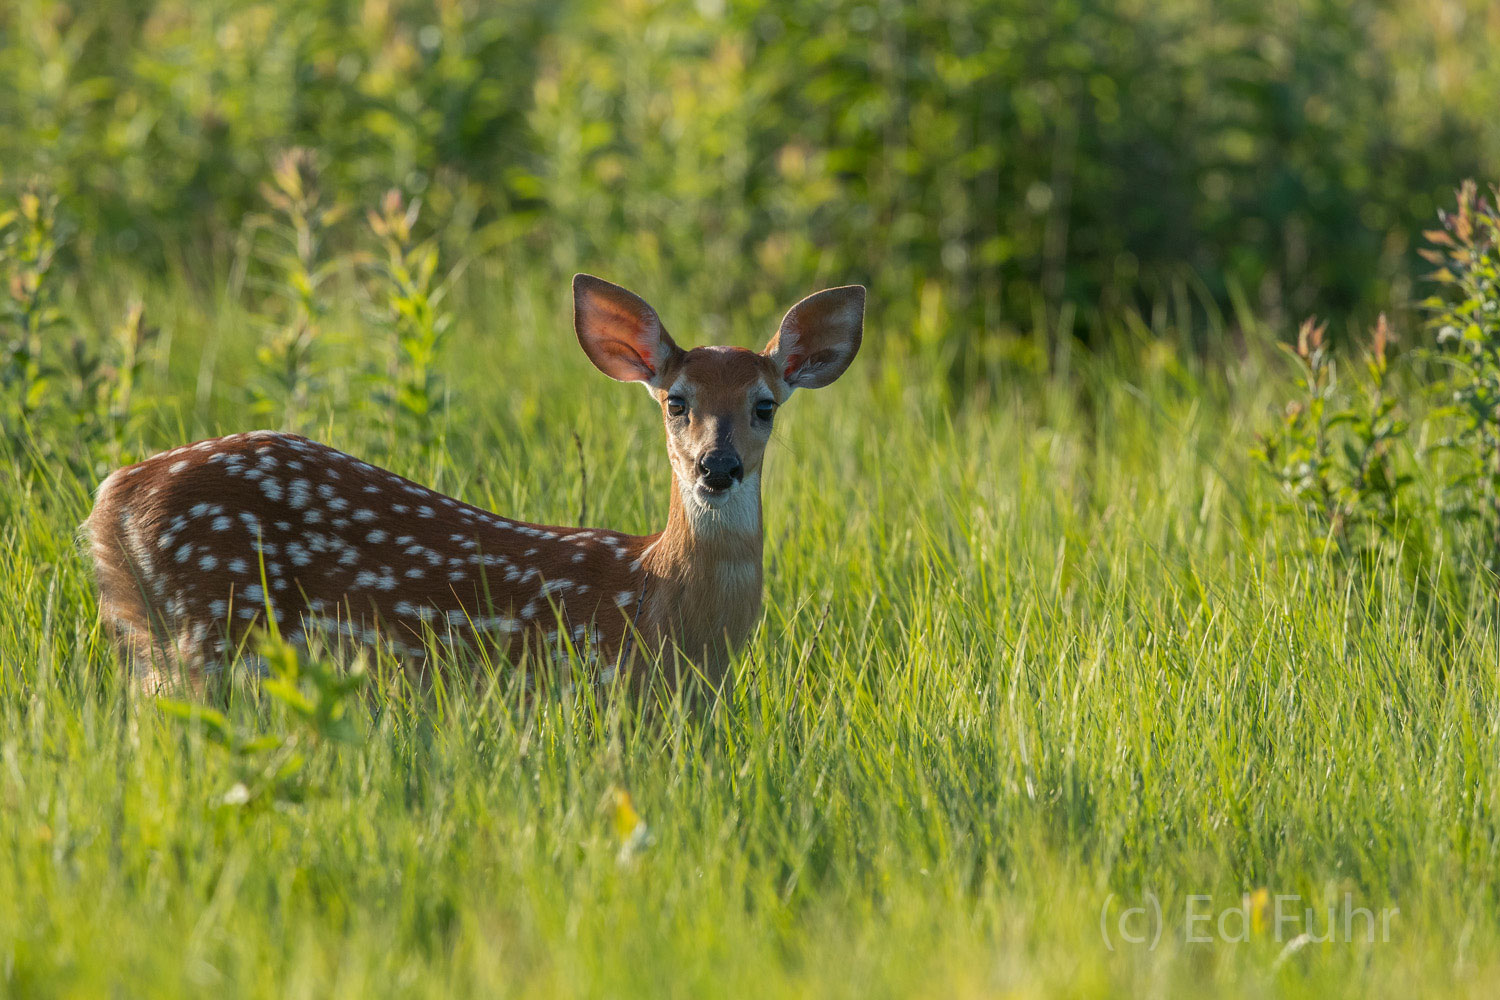 A fawn watches her mom intently.